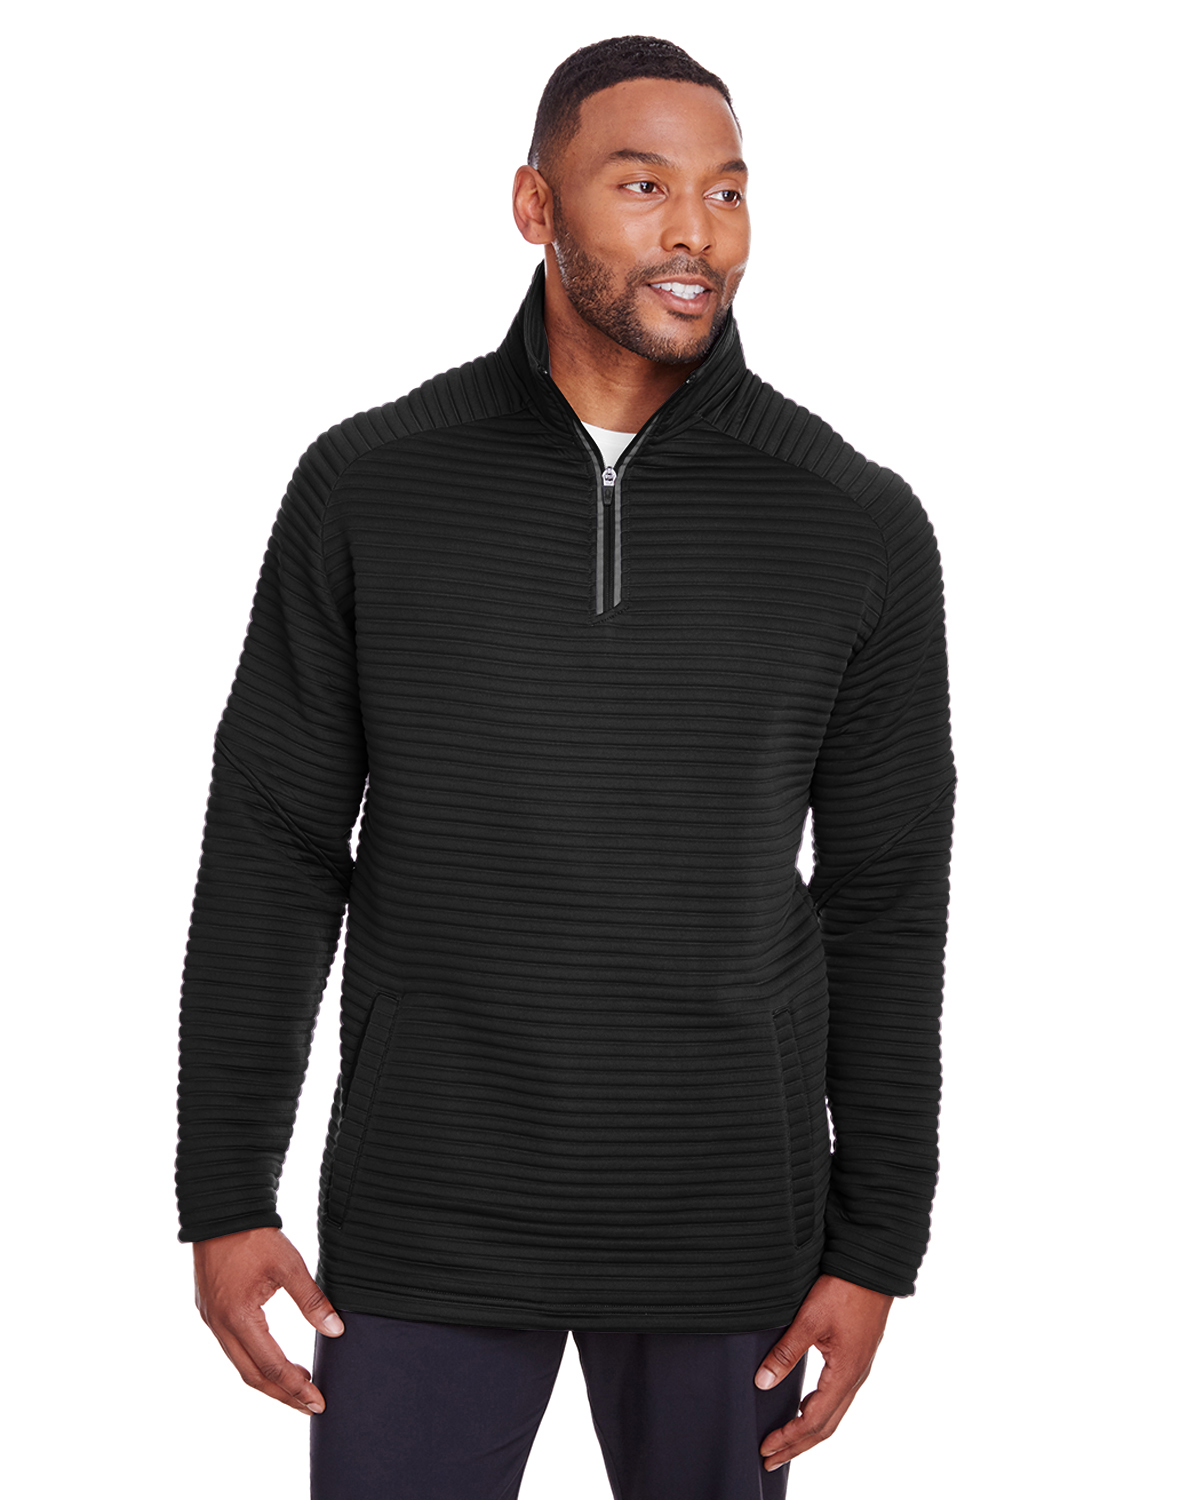 S16640 MEN'S SPYDER CAPTURE 1/4 ZIP FLEECE